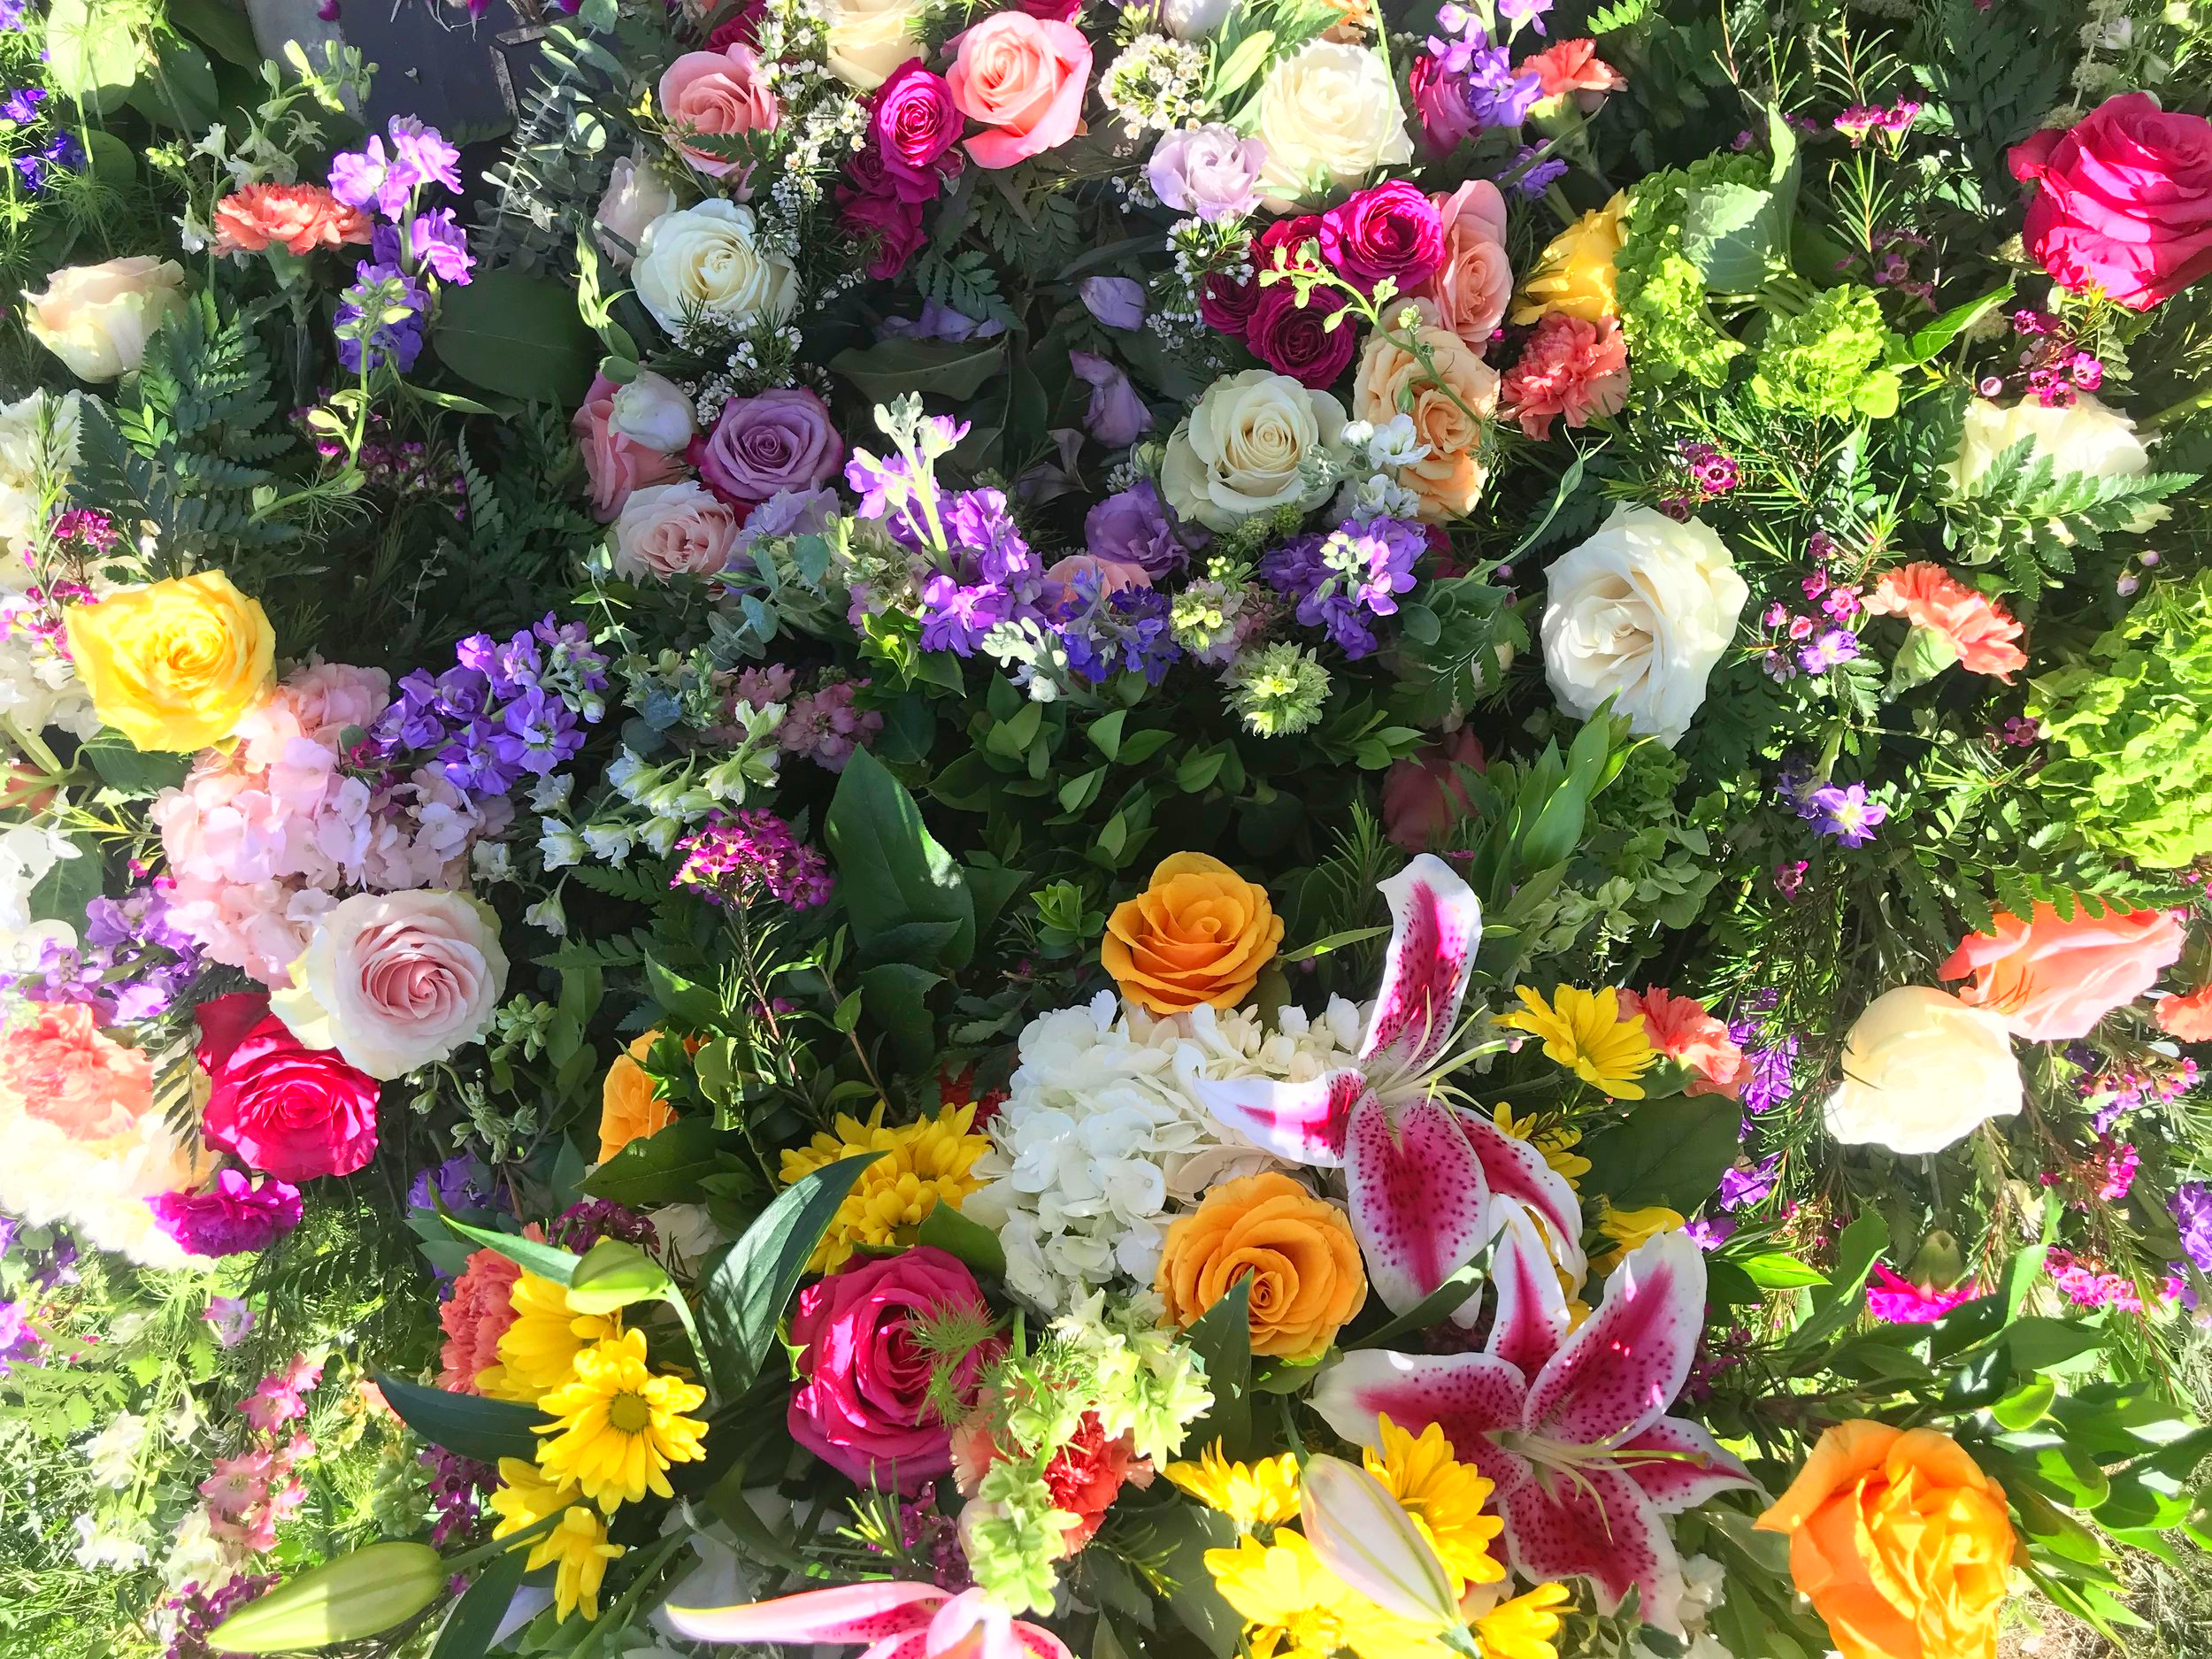 Flowers covering Jan's grave site after her burial - May 3, 2019